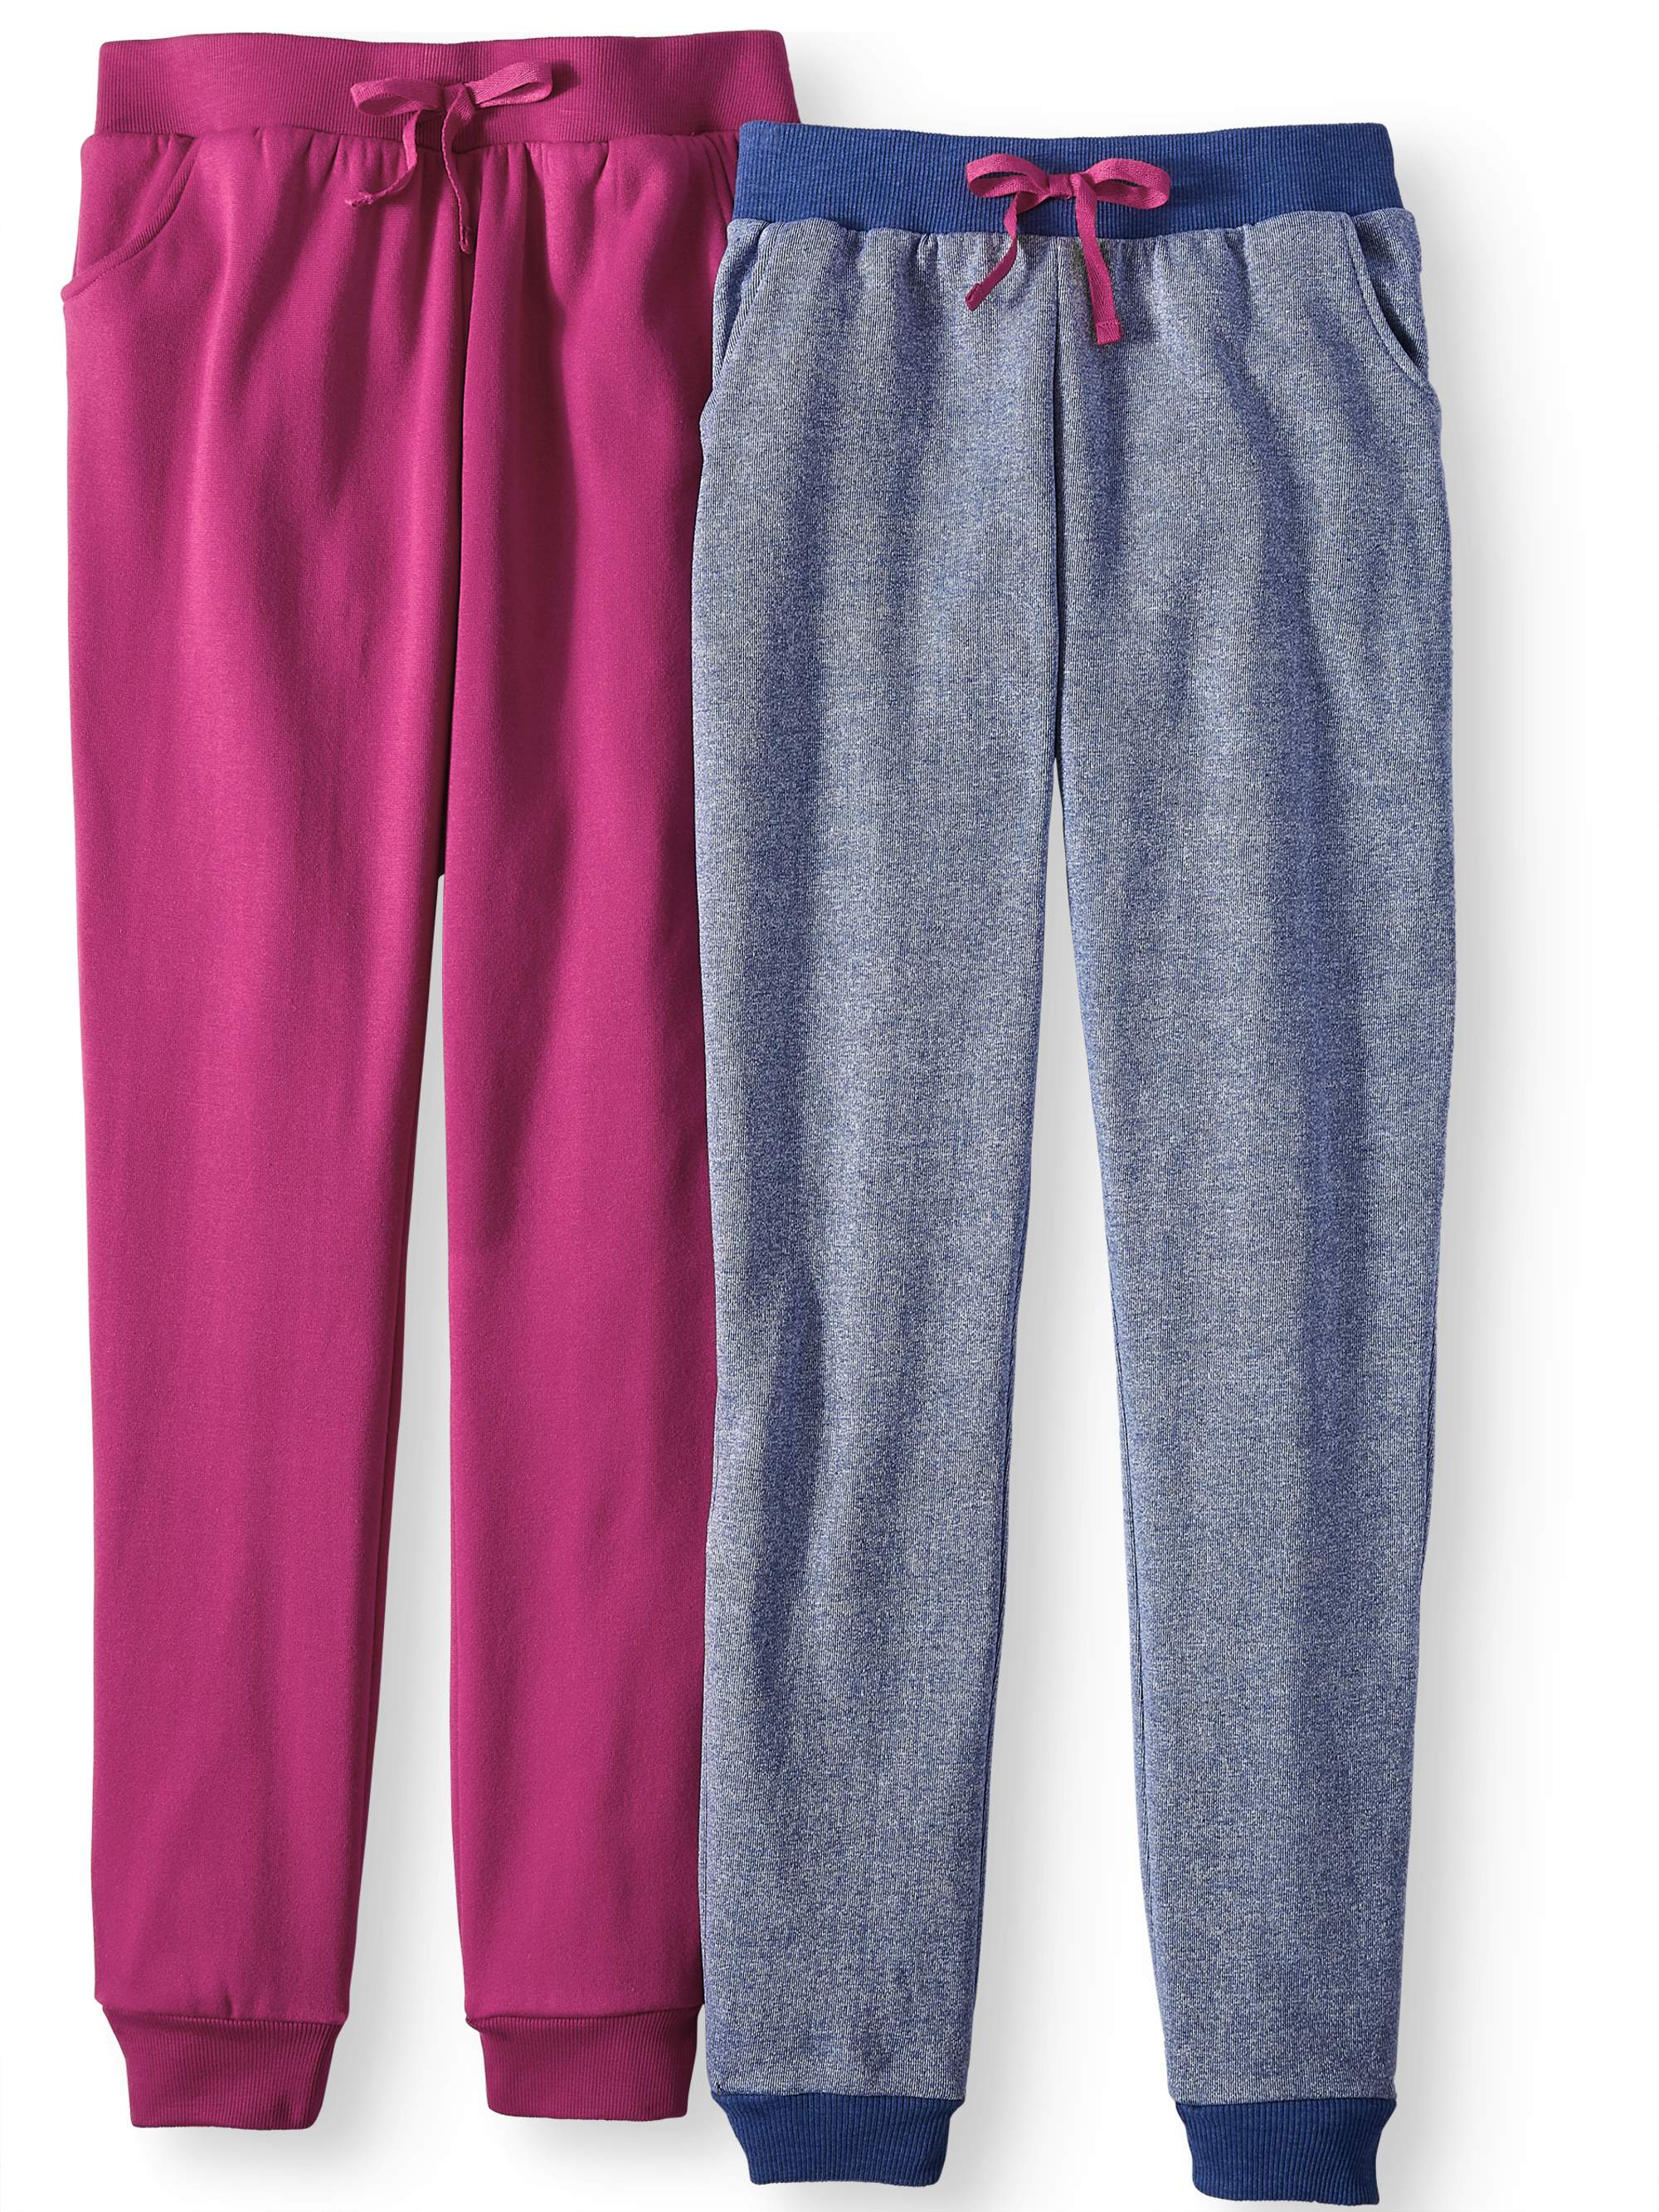 Solid and Marled Fleece Joggers, 2-Pack (Little Girls & Big Girls)